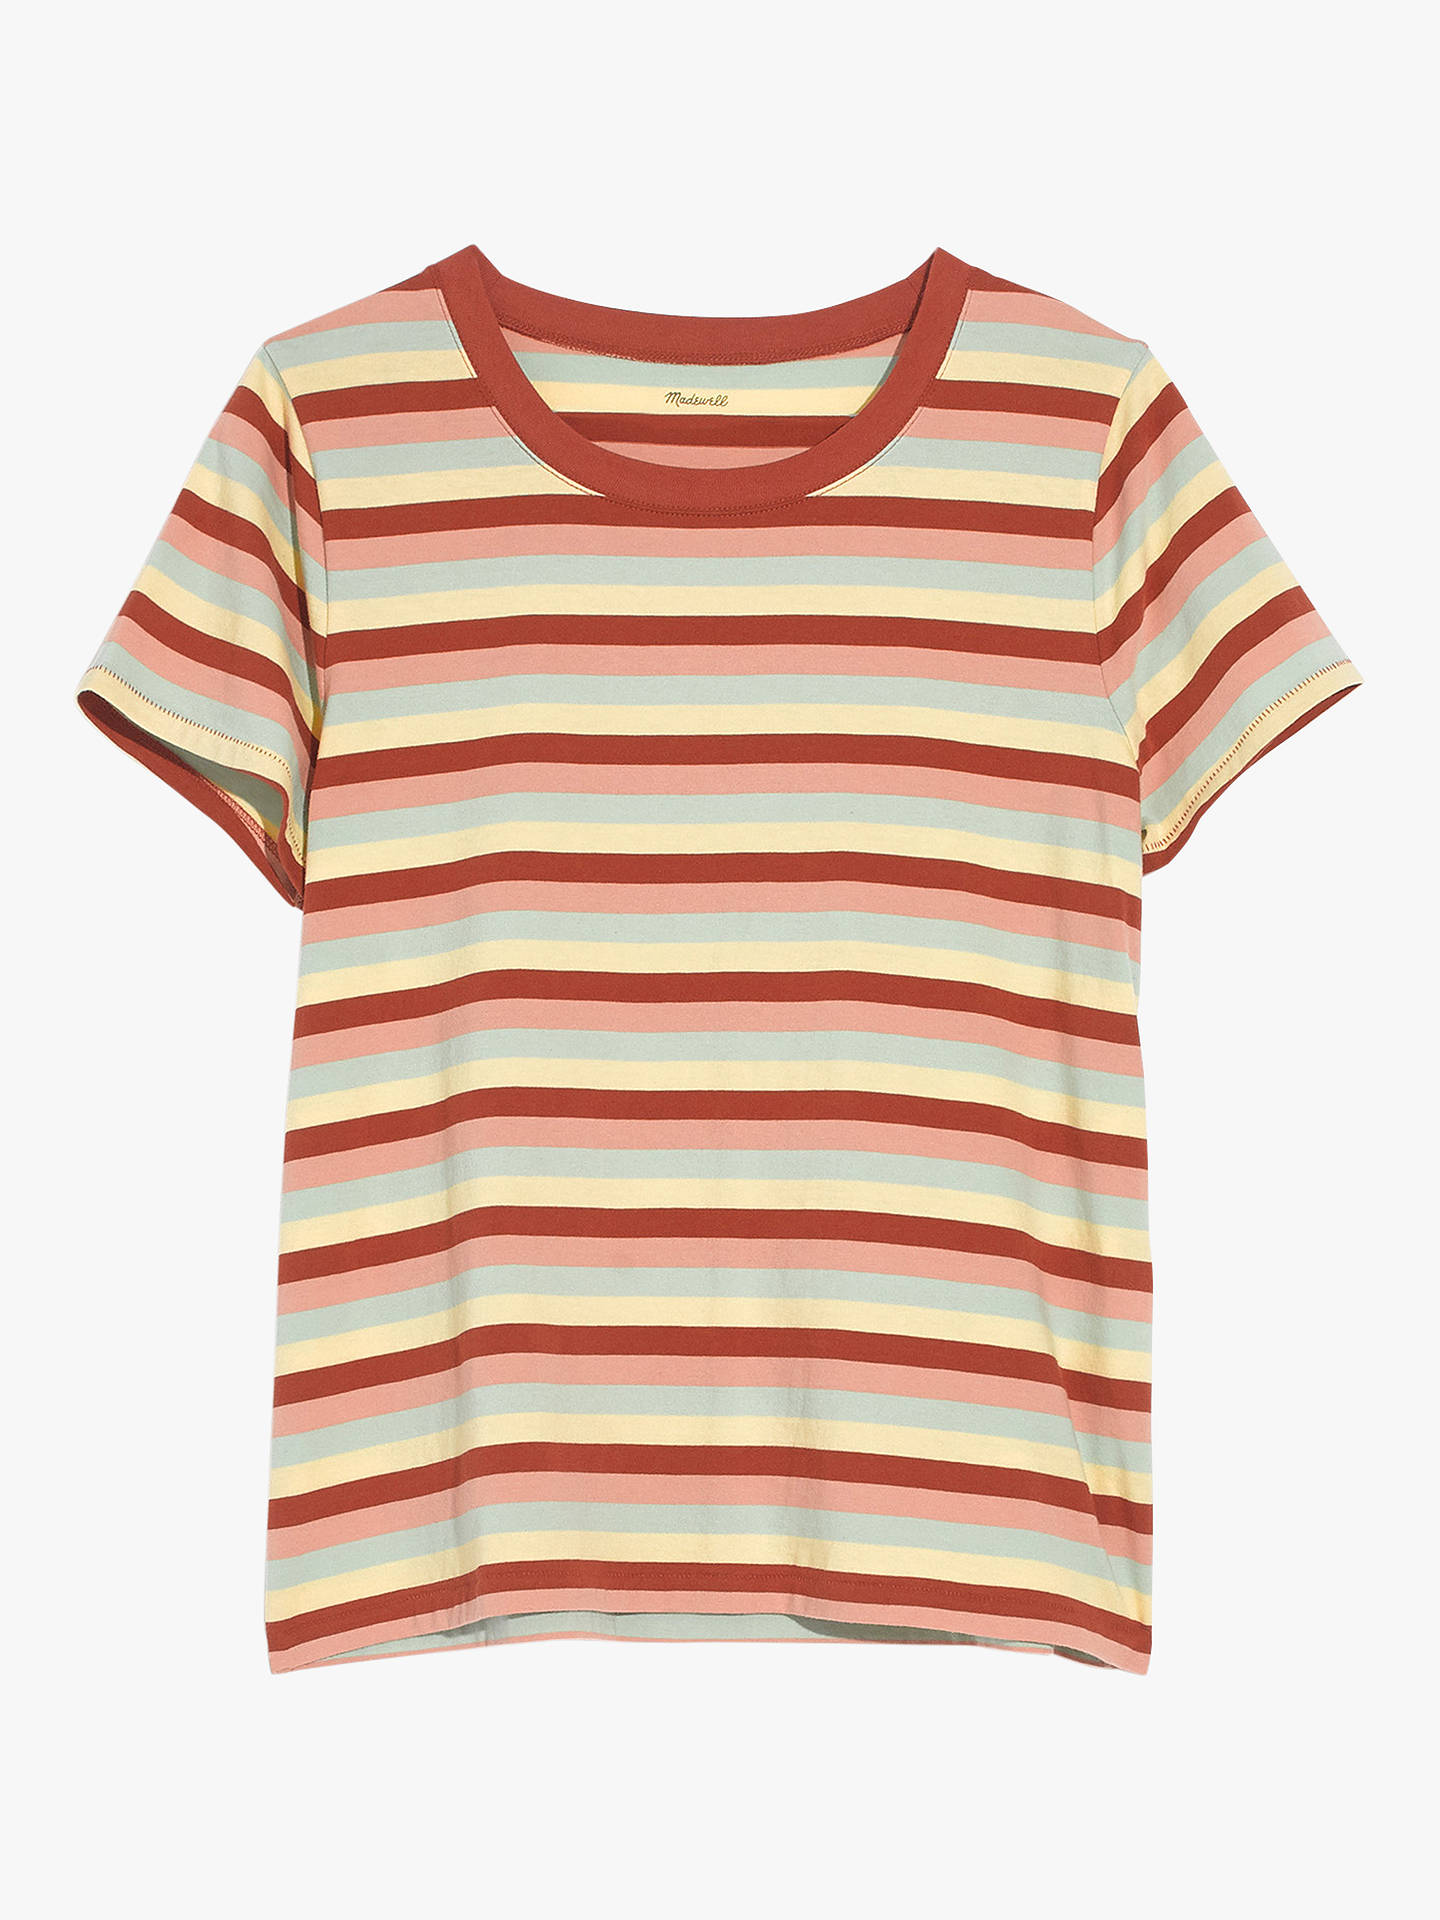 901cb922 ... Buy Madewell Northside Vintage Stripe T-Shirt, Dark Cinnabar, XXS  Online at johnlewis ...